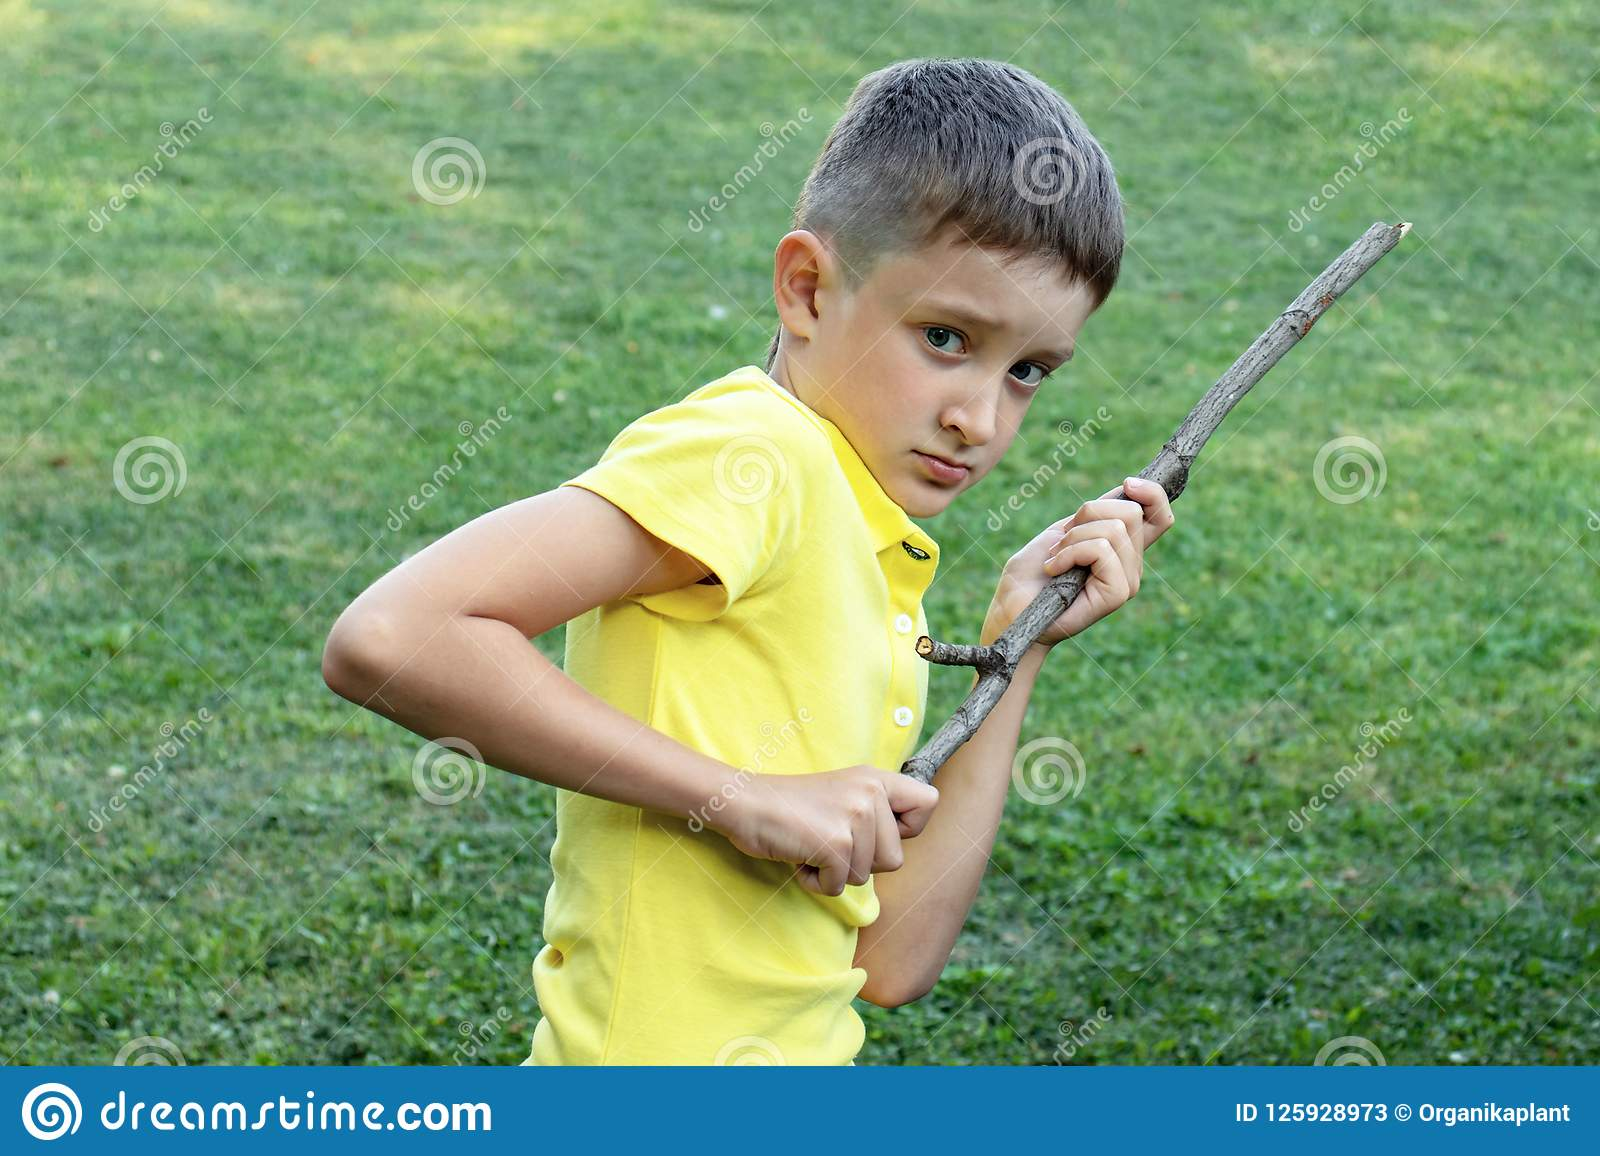 A boy witn angry face holding a stick in his hands